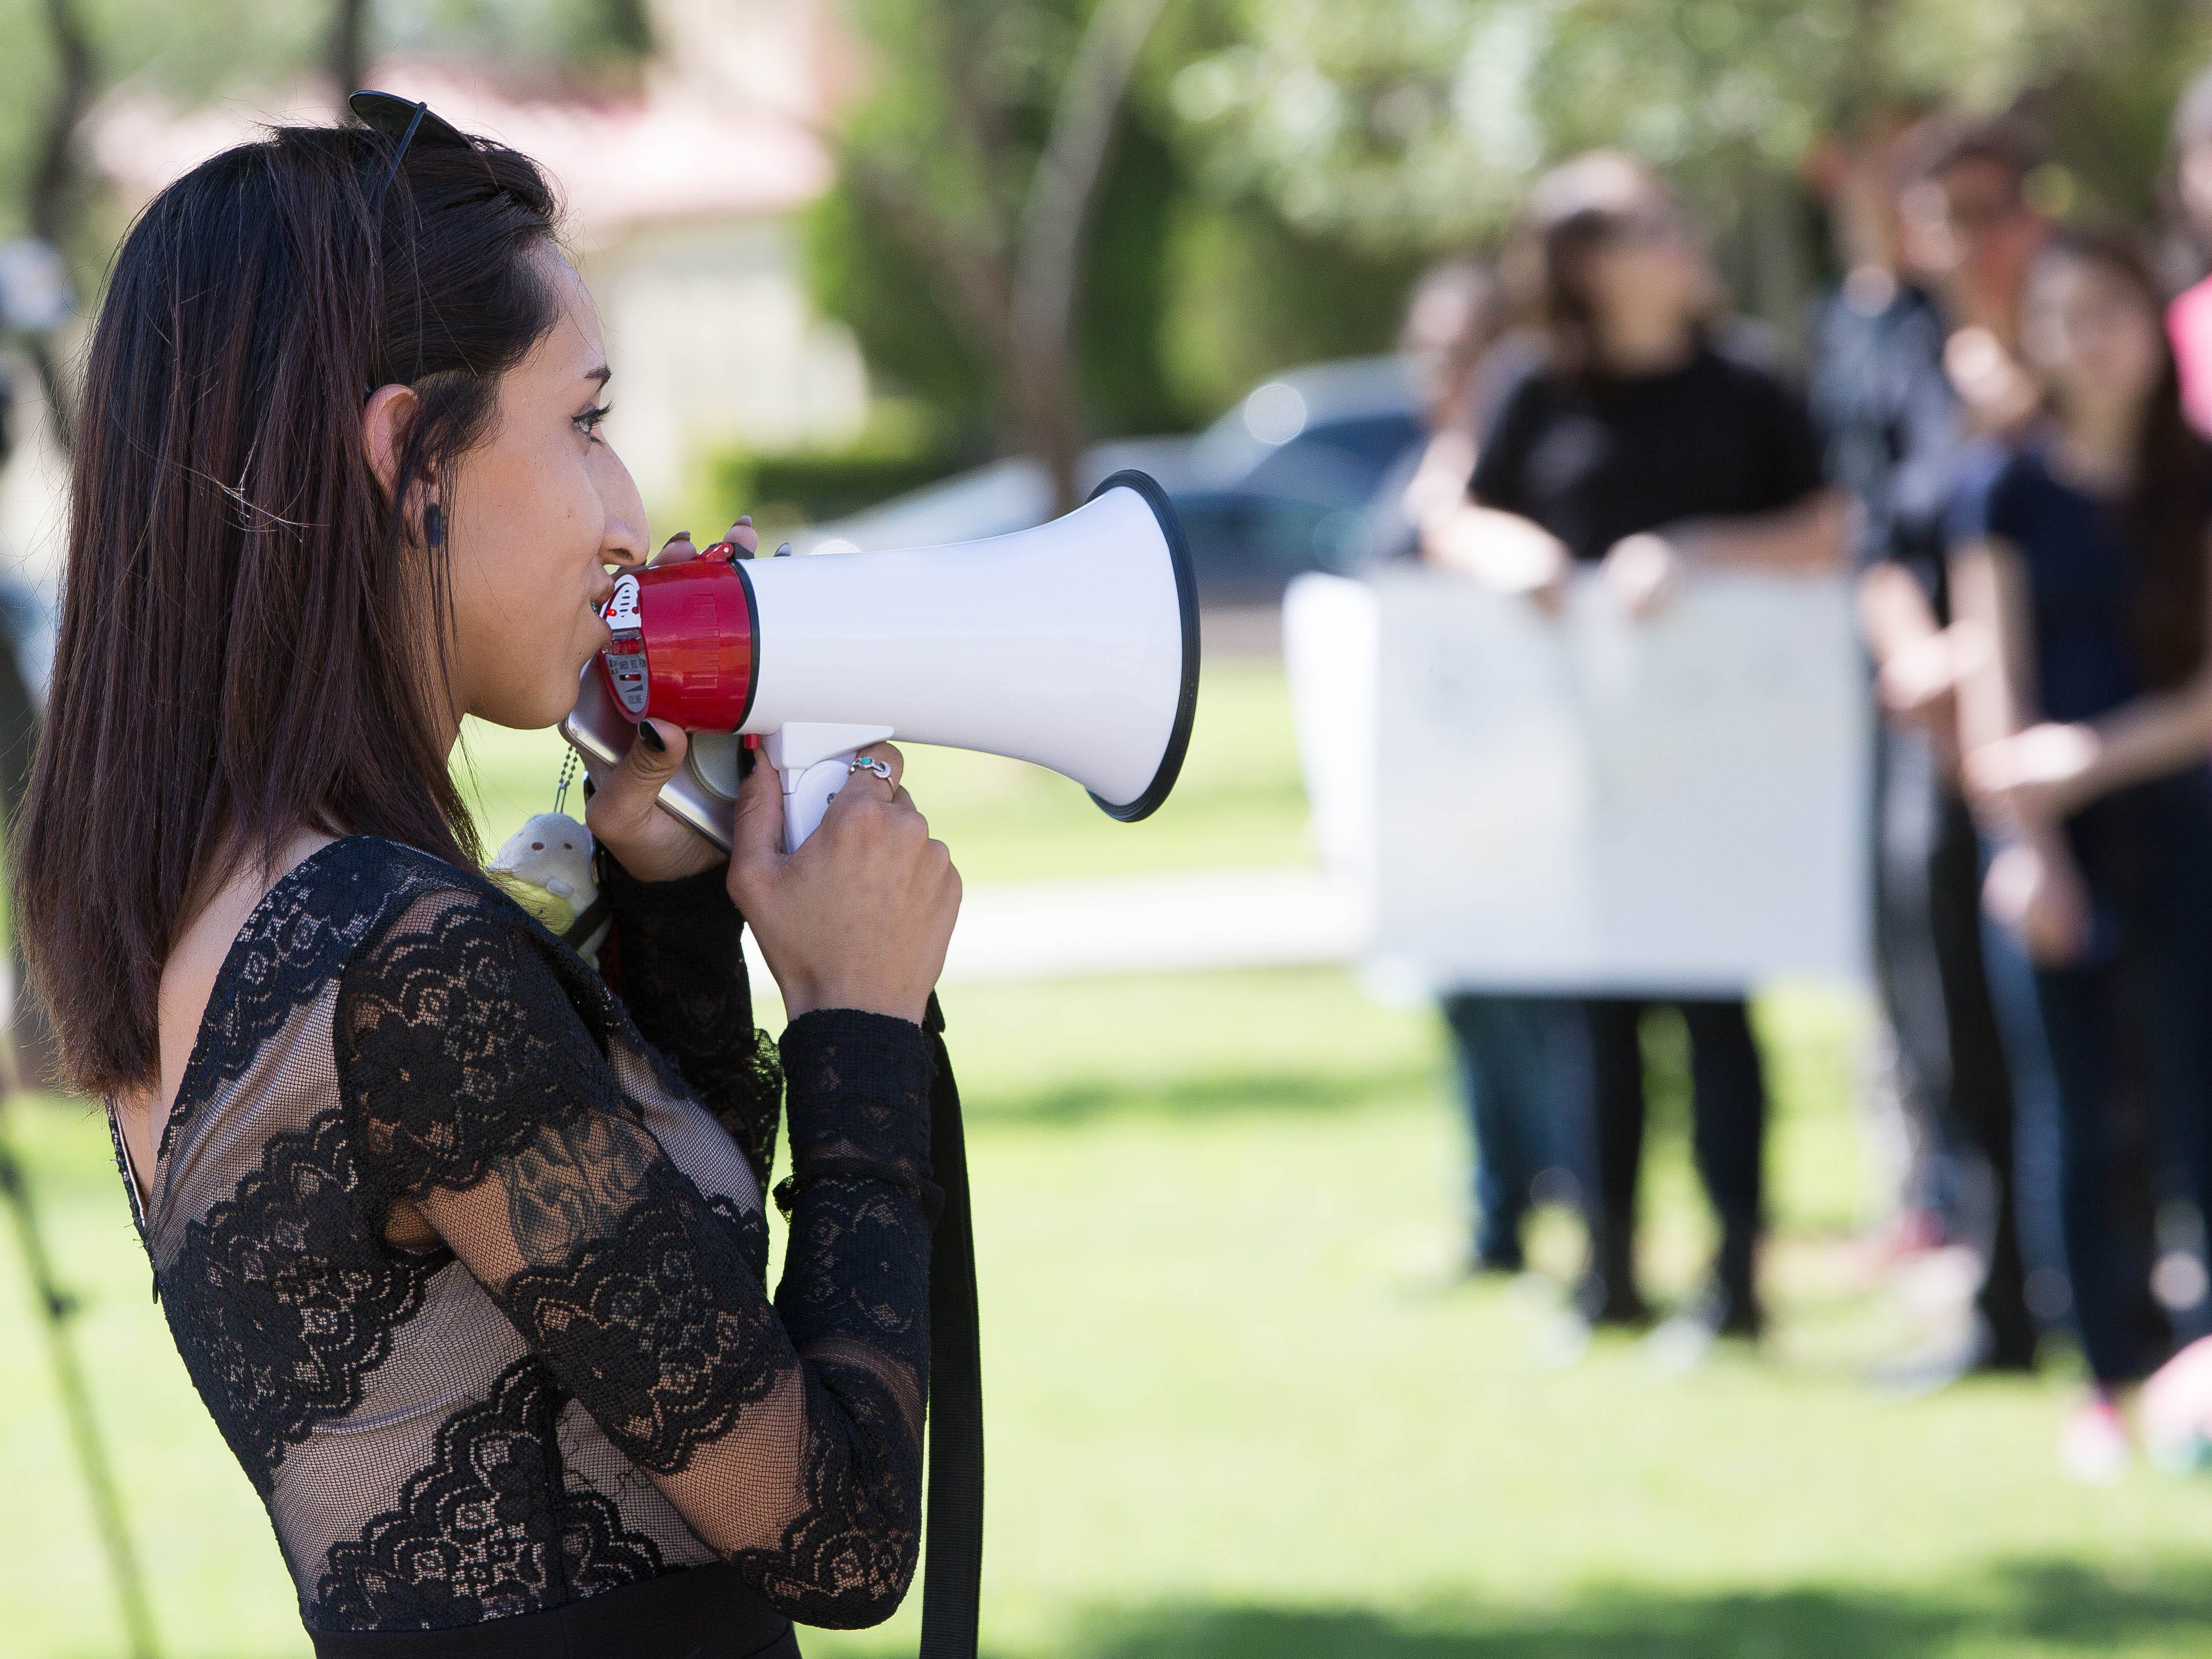 Mariyah Lopez, 18, uses a bullhorn to address her fellow student protesters outside of Alma d'Arte arts charter school, Friday September 14, 2018. Students at Alma d'Arte Protest the termination of two staff, a teacher and a special education coordinator, along  with some student expulsions.